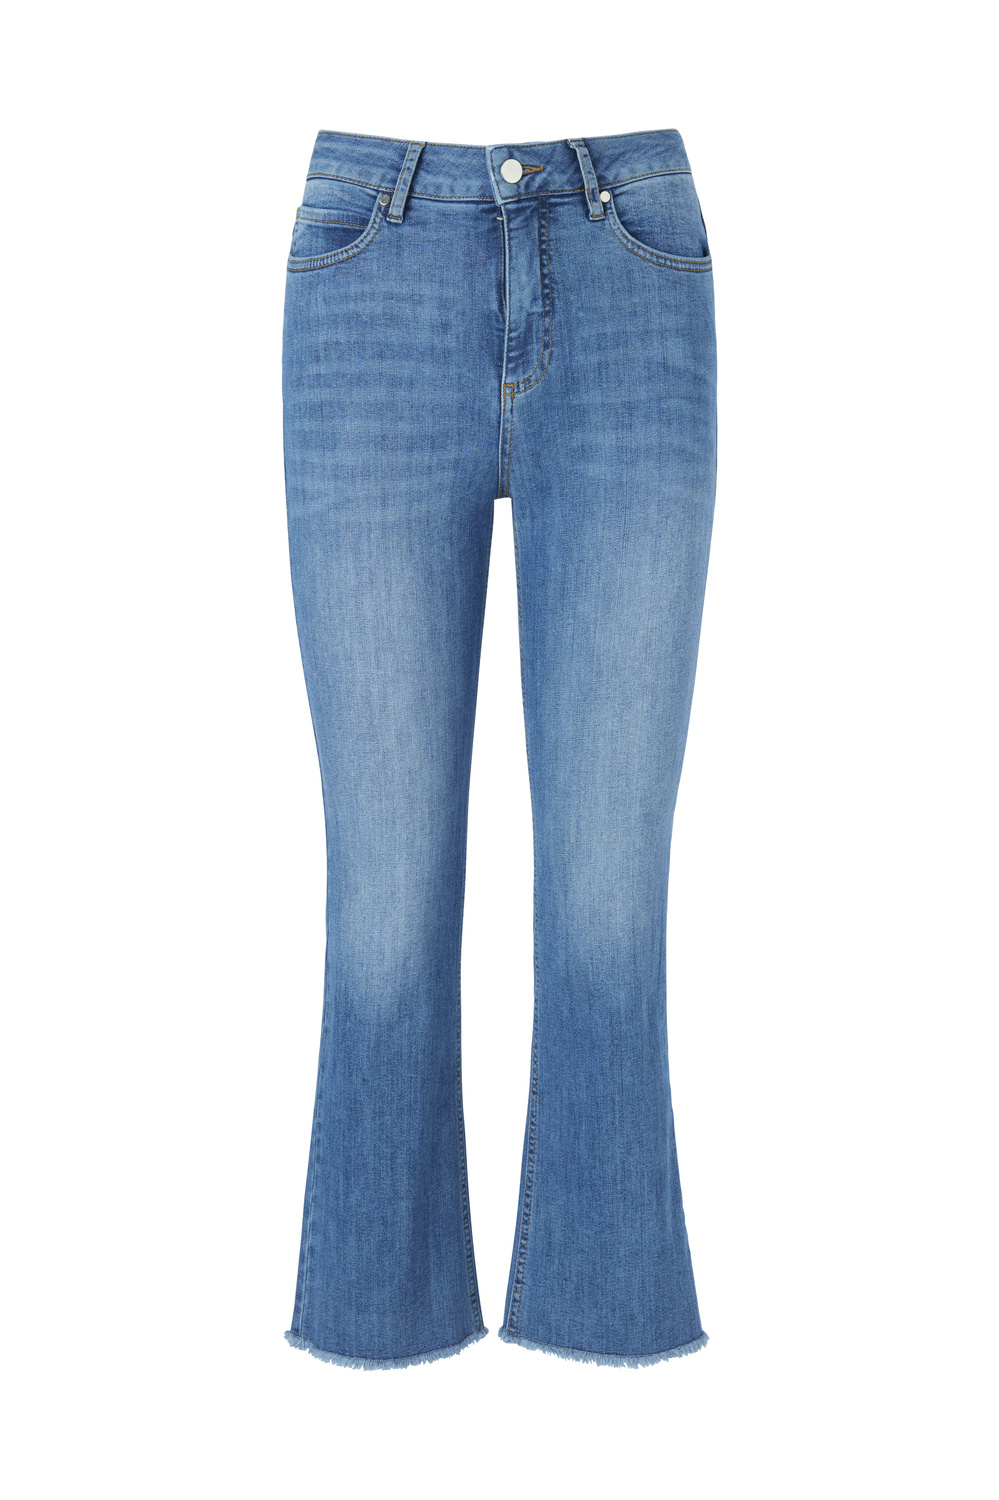 Ohio Cropped Jeans - Blue Wash-1